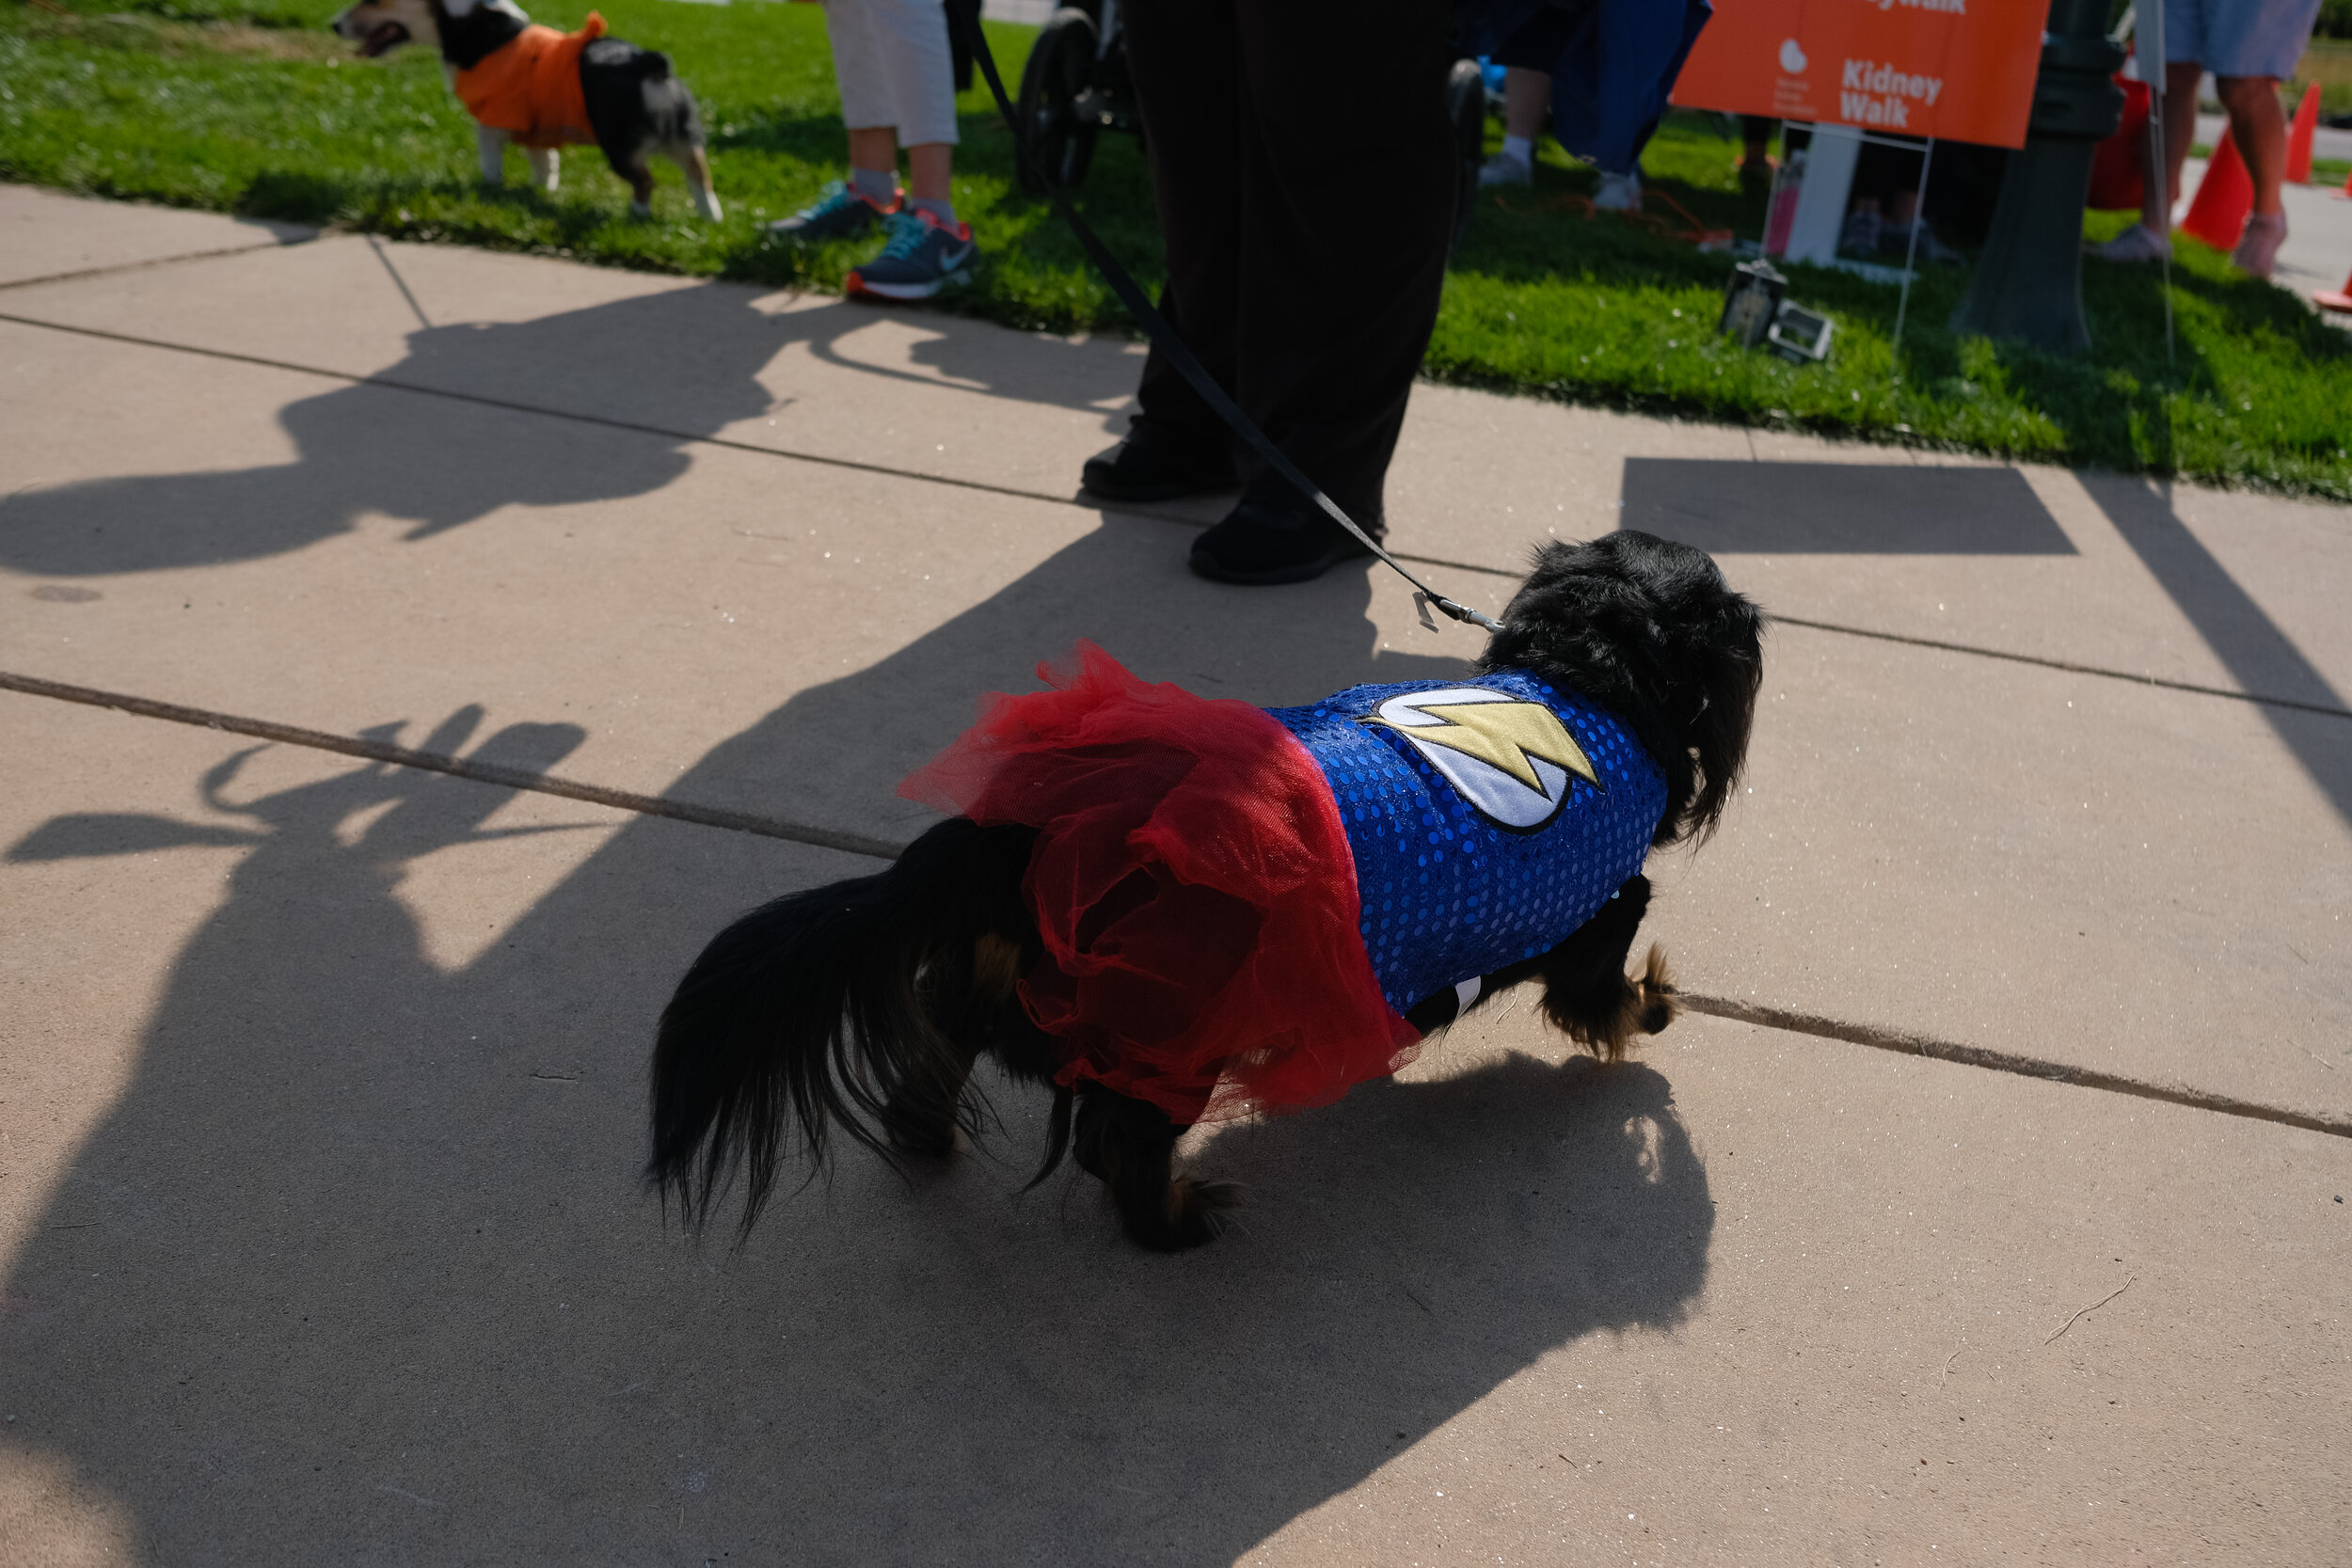 Denver Kidney Walk-226.jpg